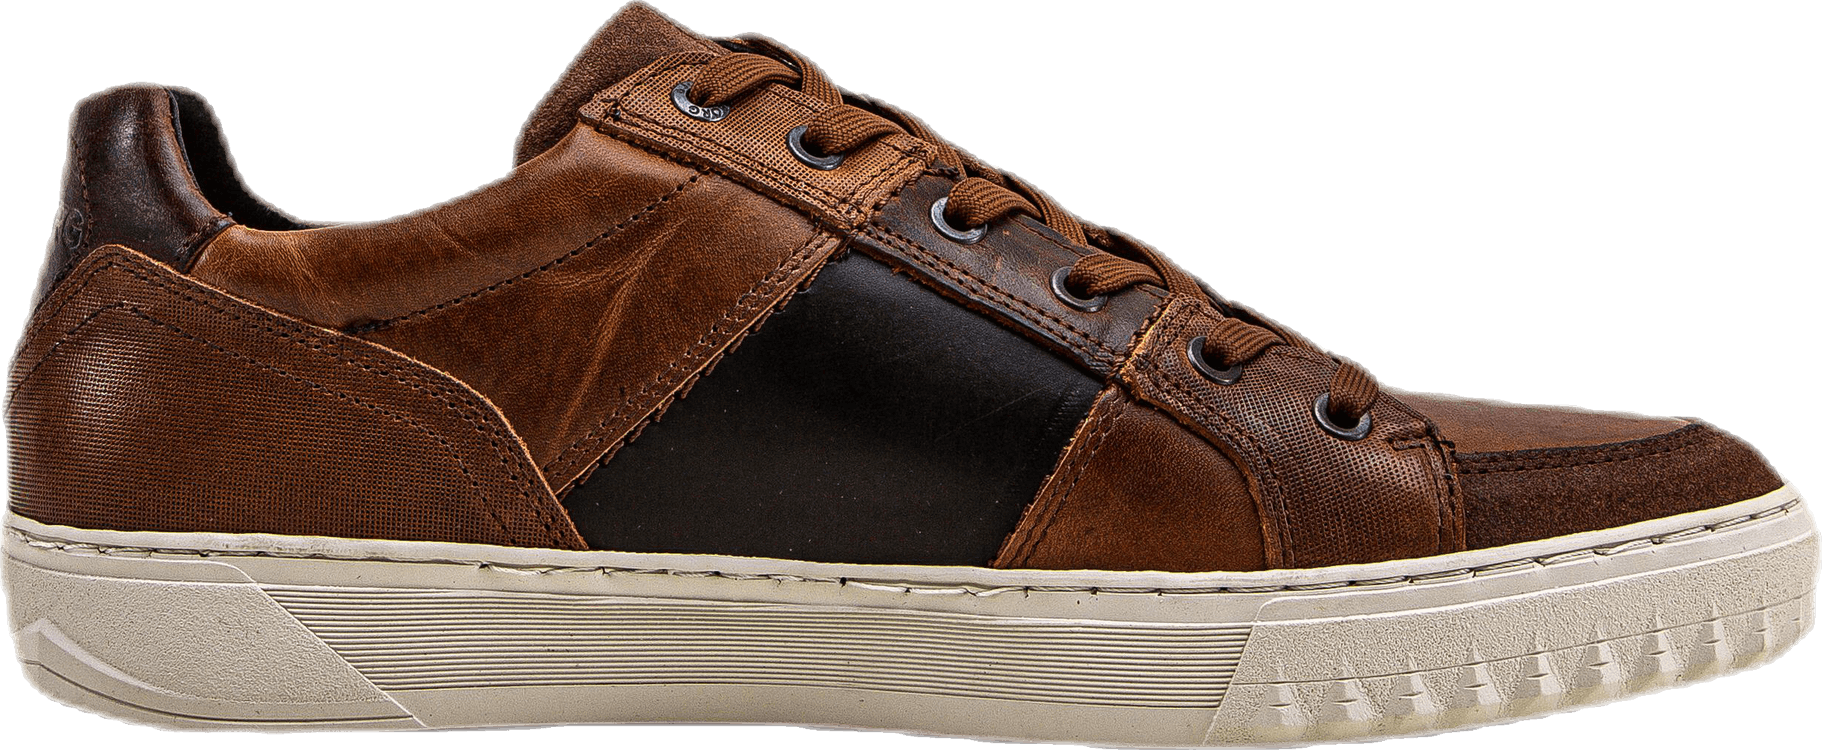 Collin Low Dmt Brown